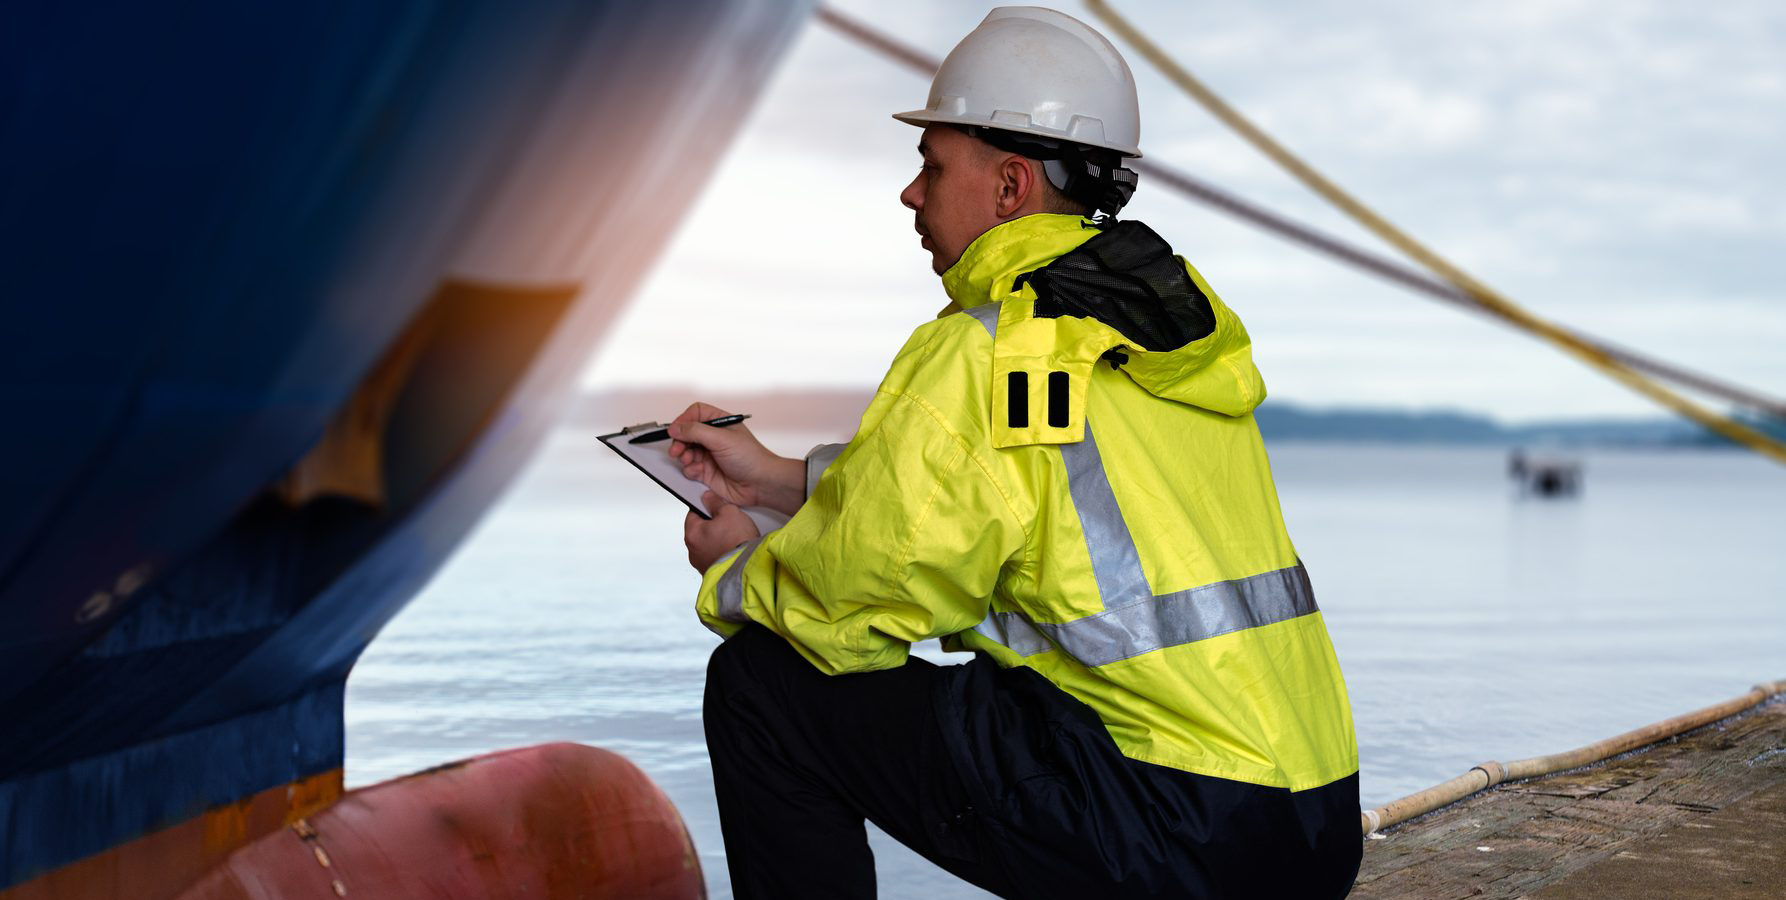 Ship supervisor engineer inspector stands at the dockside in a port. Wearing safety helmet and yellow vest. Cargo shipping industry. Protection and indemnity concept.